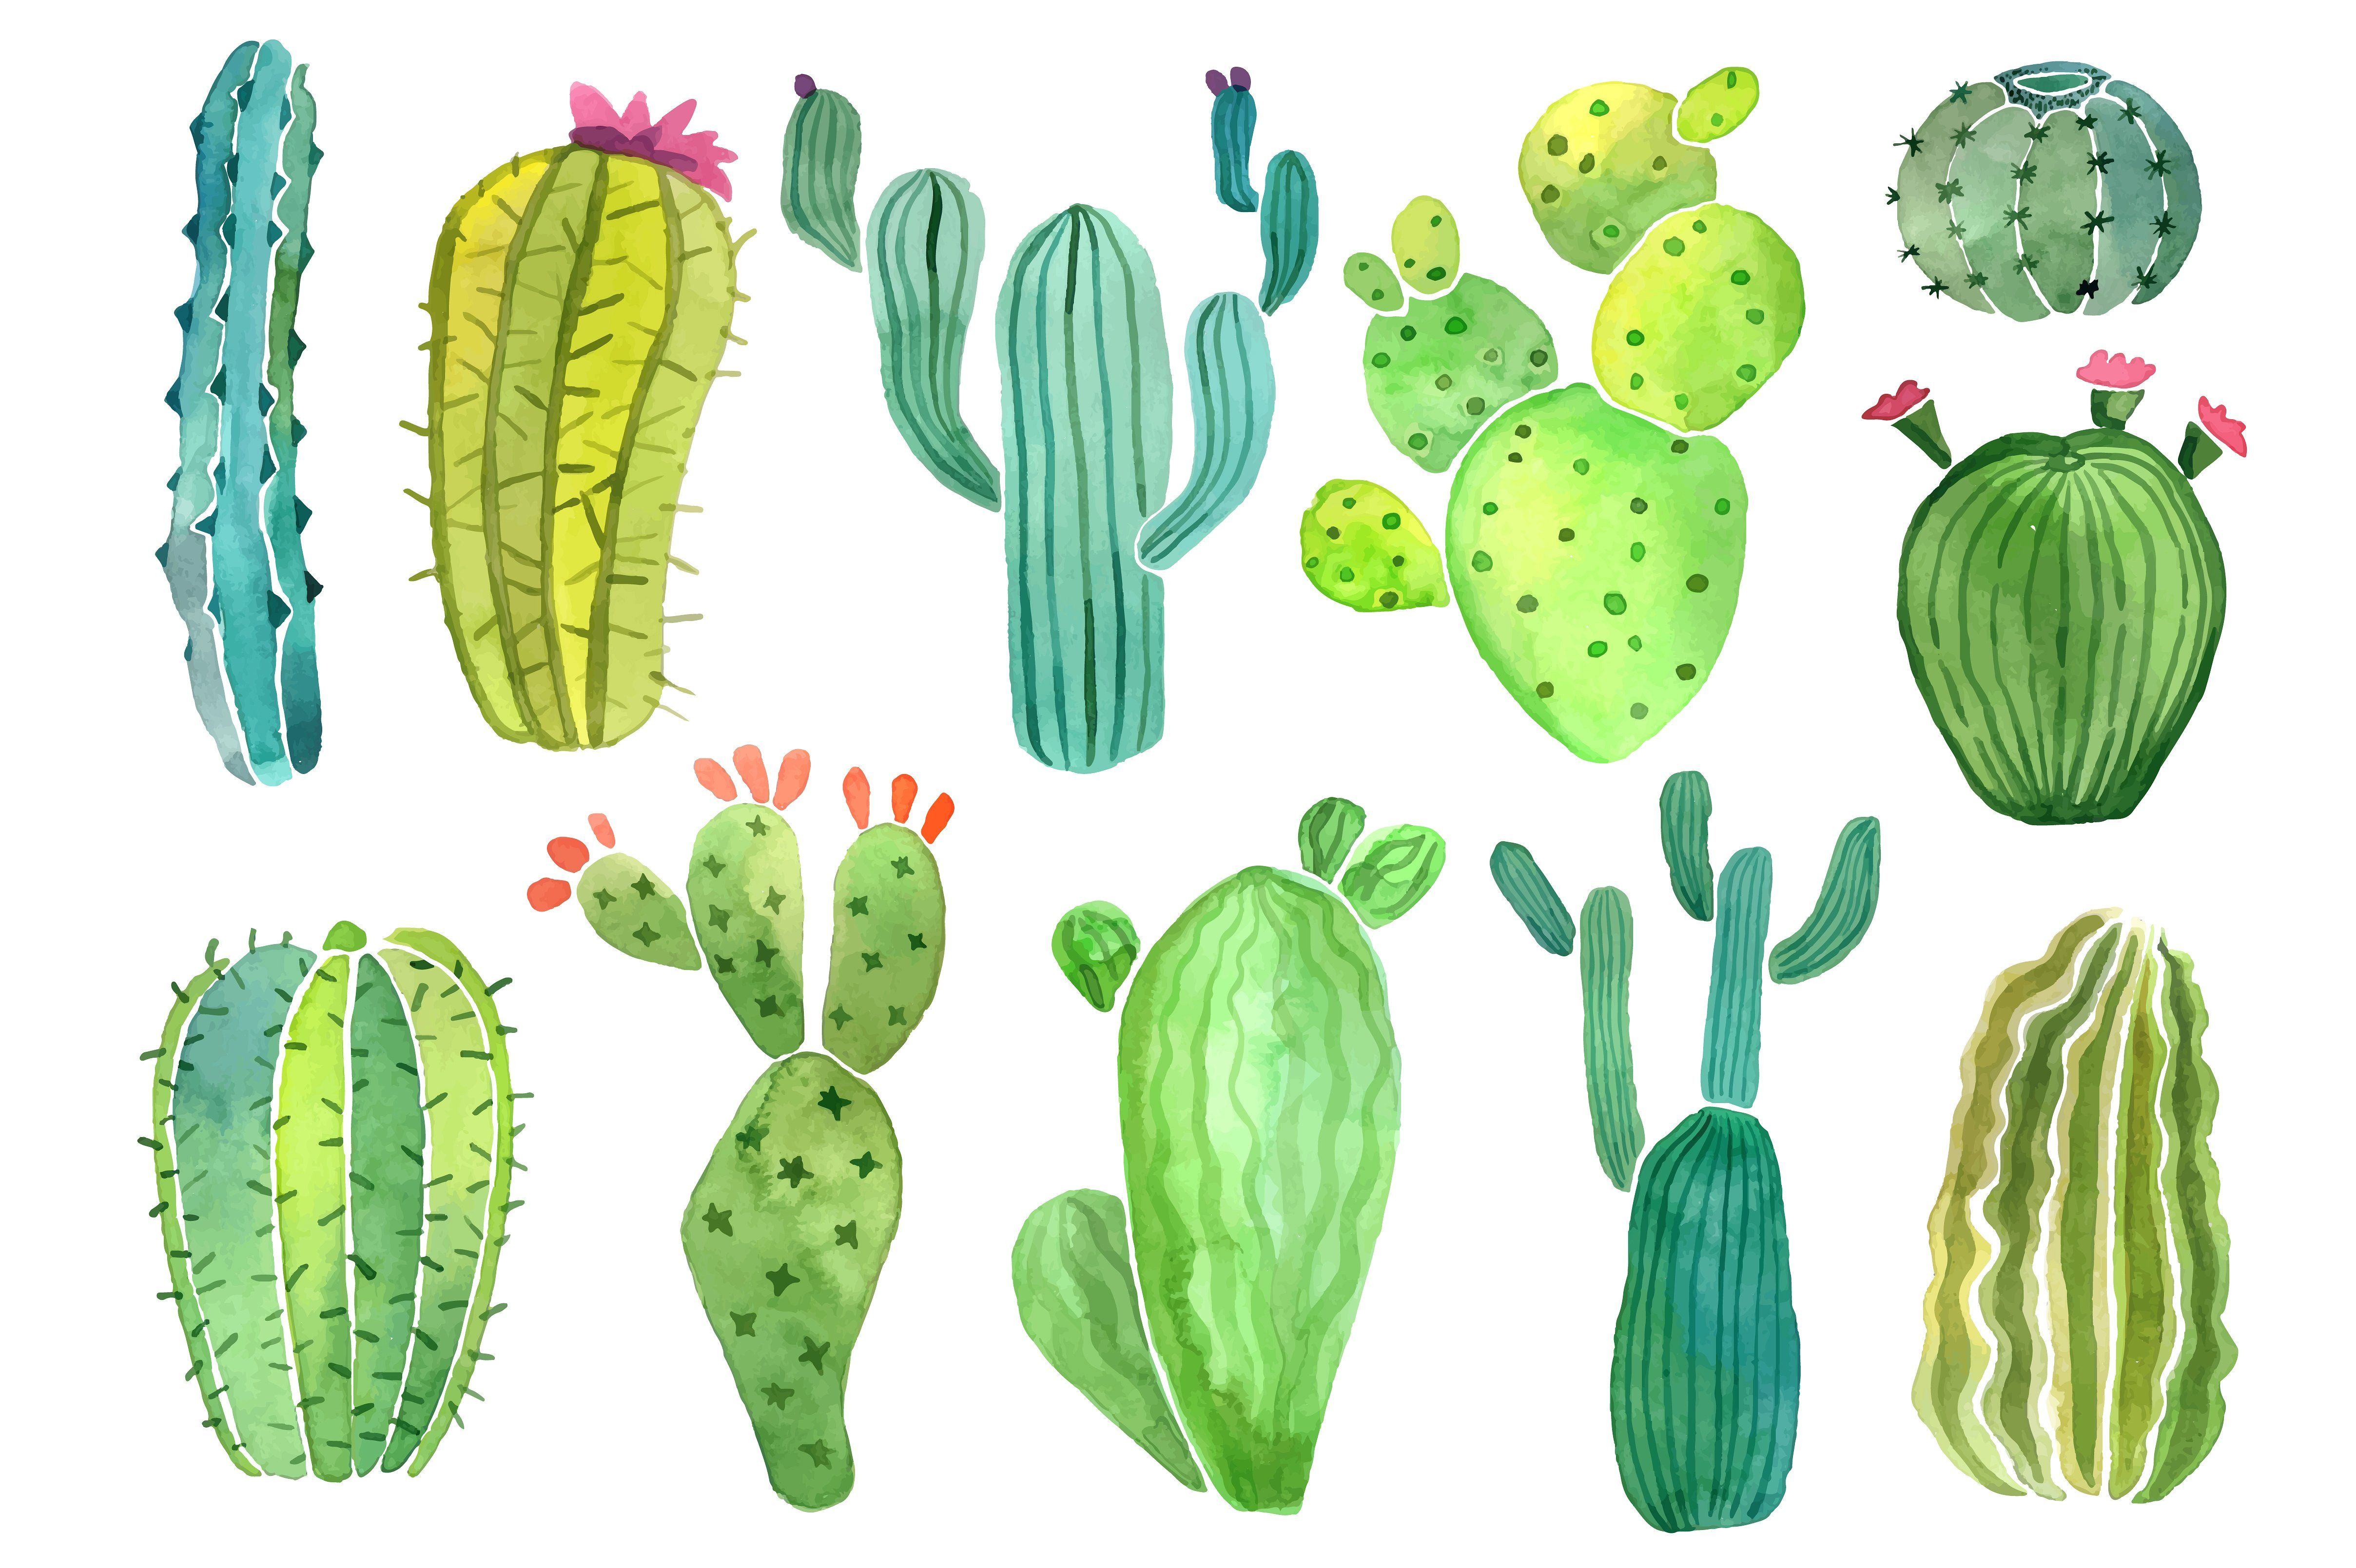 Watercolor Cactus And Succulent Set Objects 3 Cactus Backgrounds